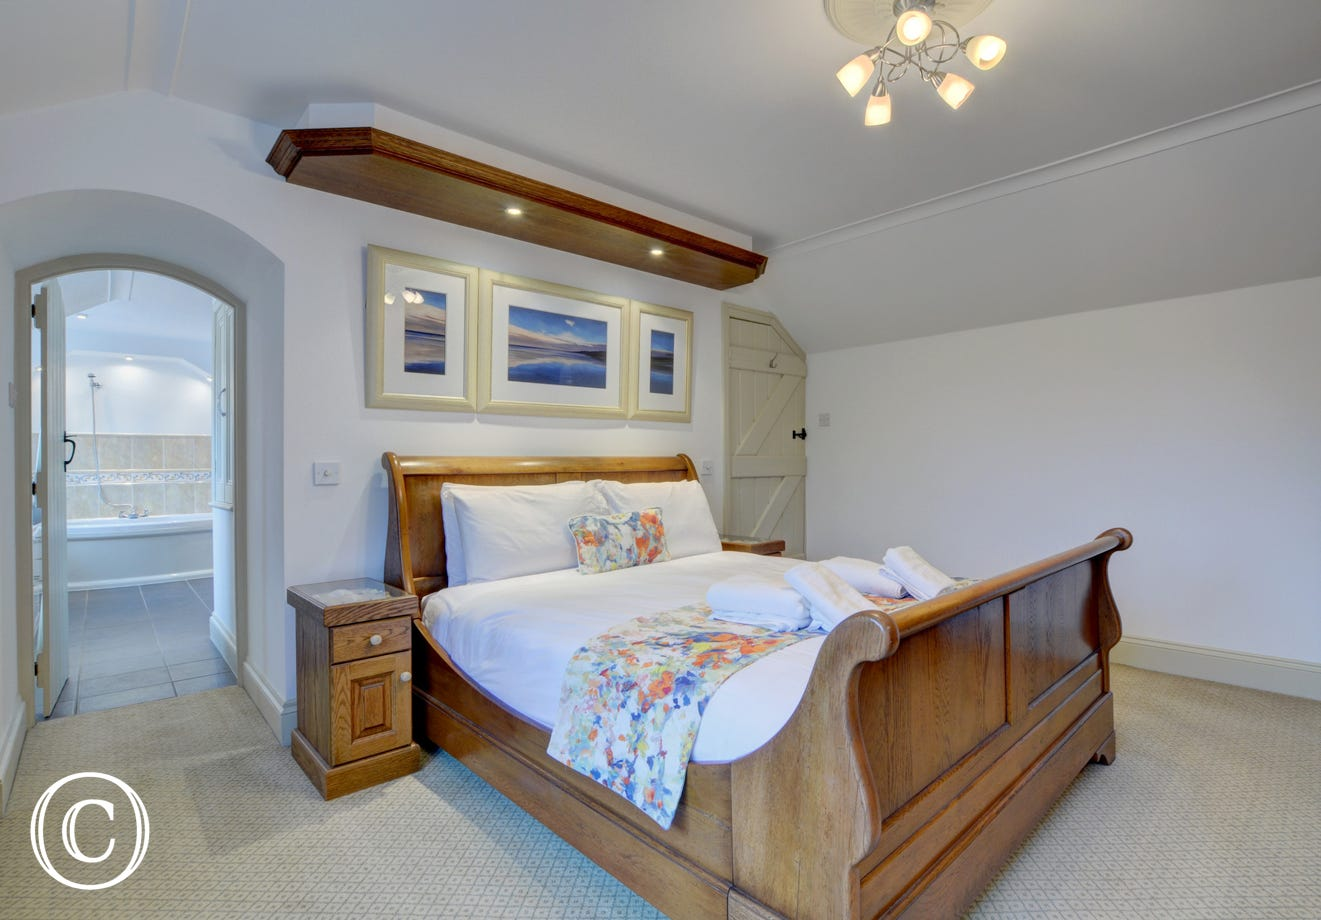 The master bedroom with a sleigh style bed